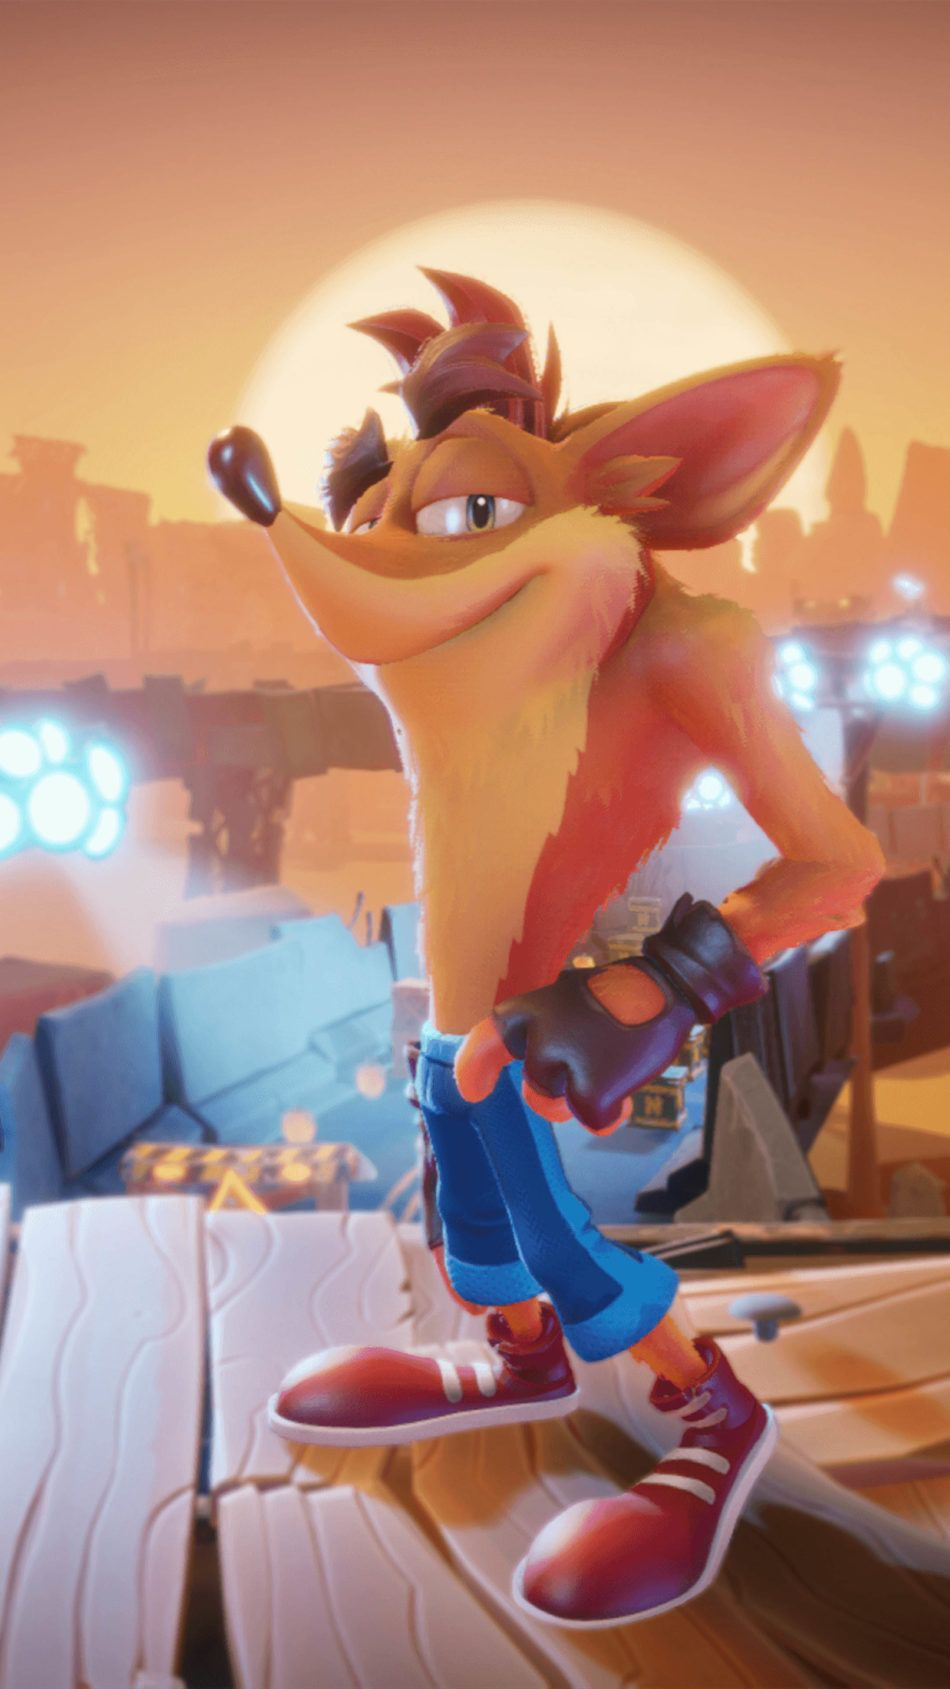 Crash Bandicoot 4 It's About Time Game 2020 4K Ultra HD